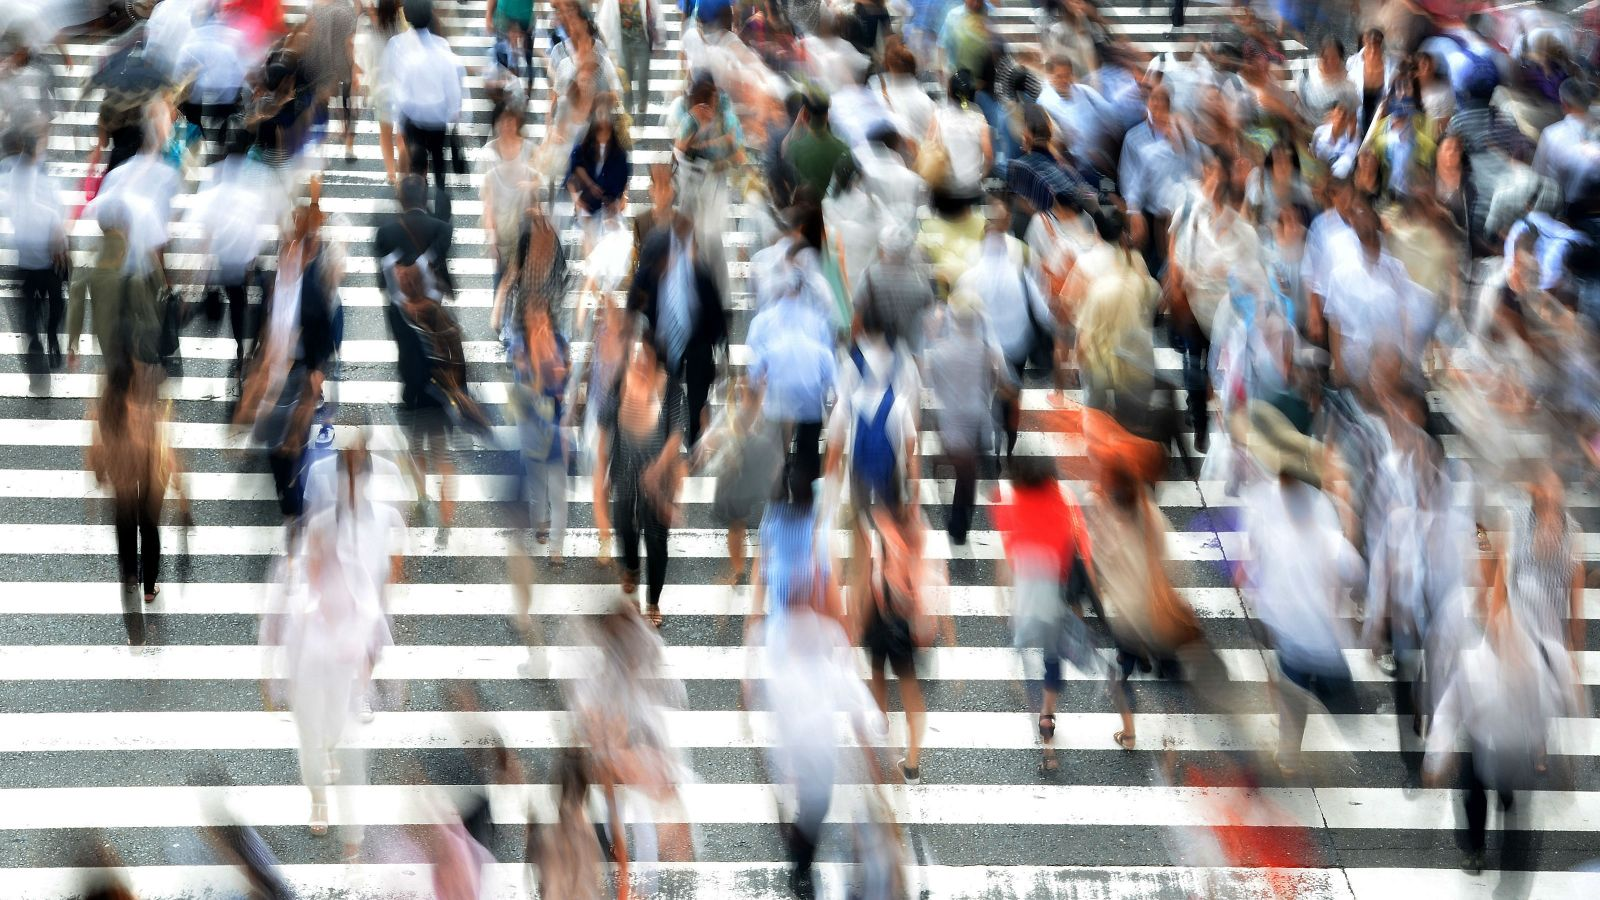 A blurred image of people crossing the road.